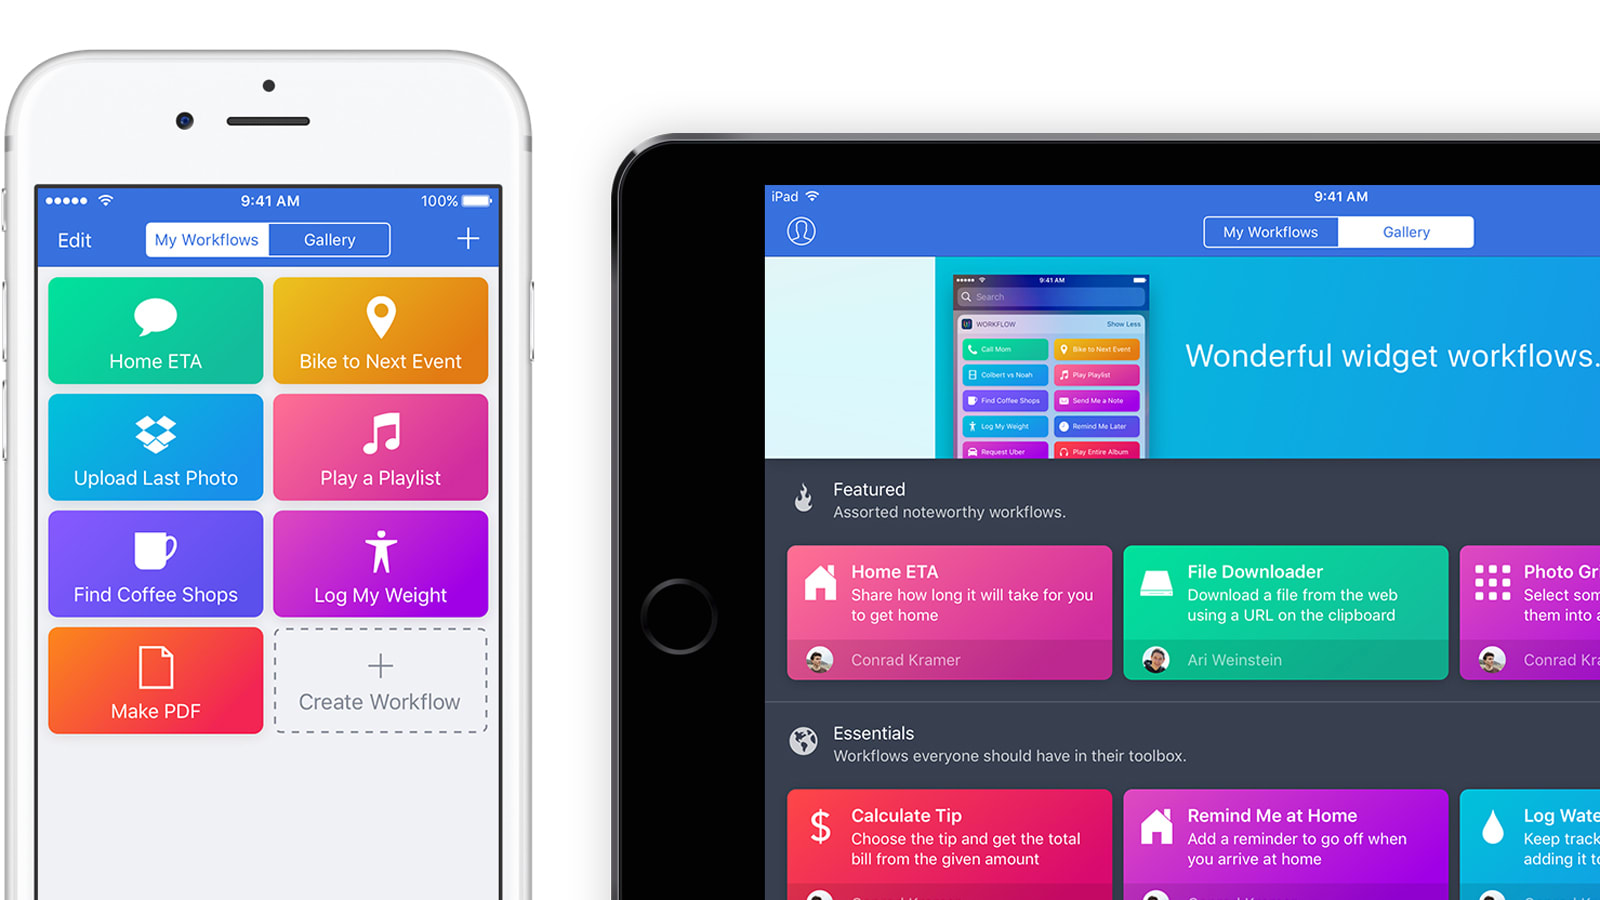 Apple acquisition hints at deep automation in iOS